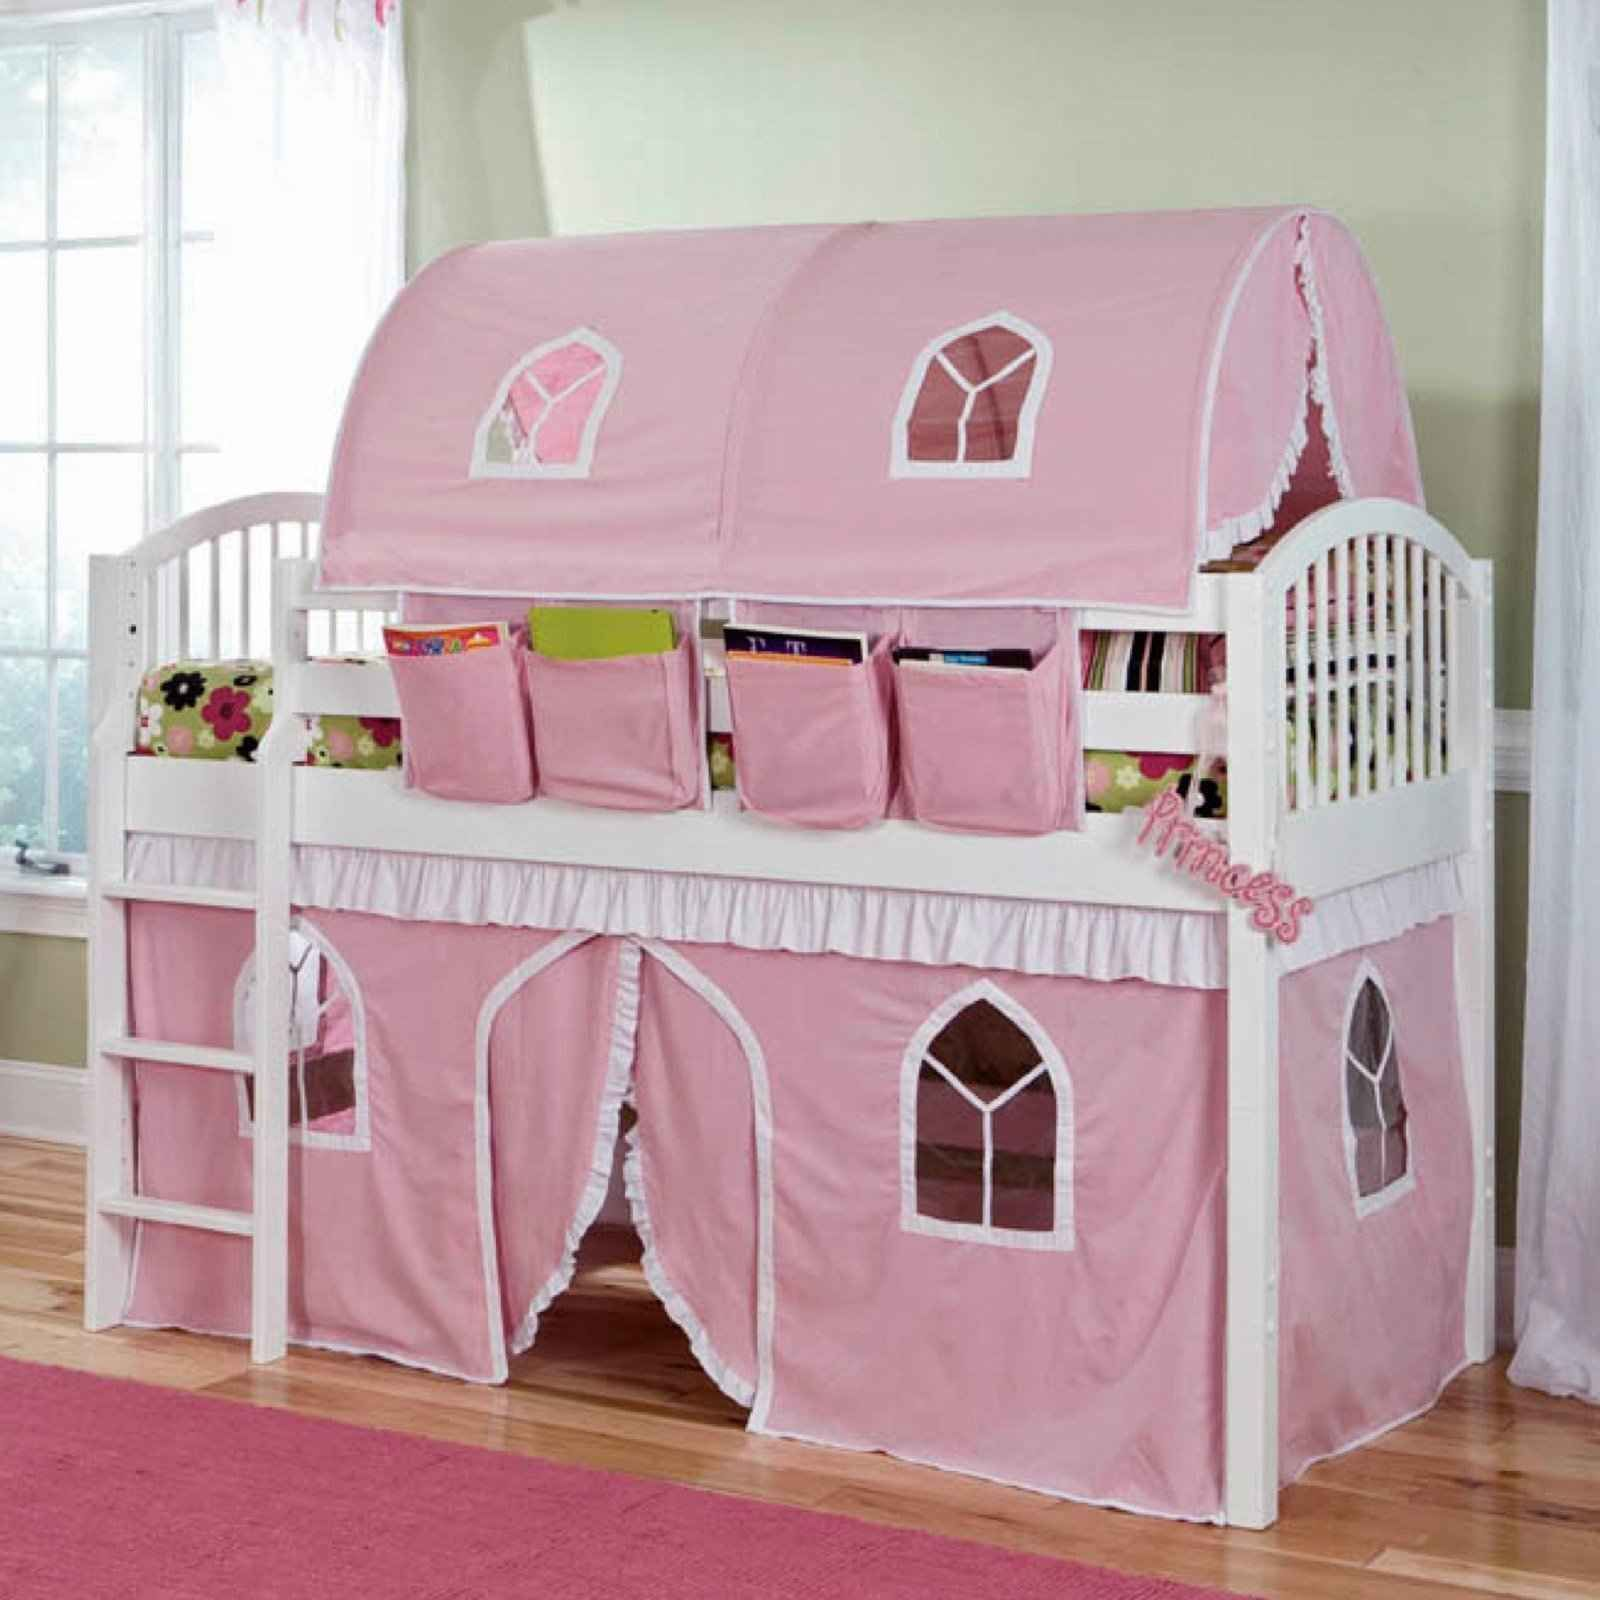 Kids bed tent canopy - 19 Best Photos Of Toddler Loft Bed Kids Loft Bed With Storage Diy Toddler